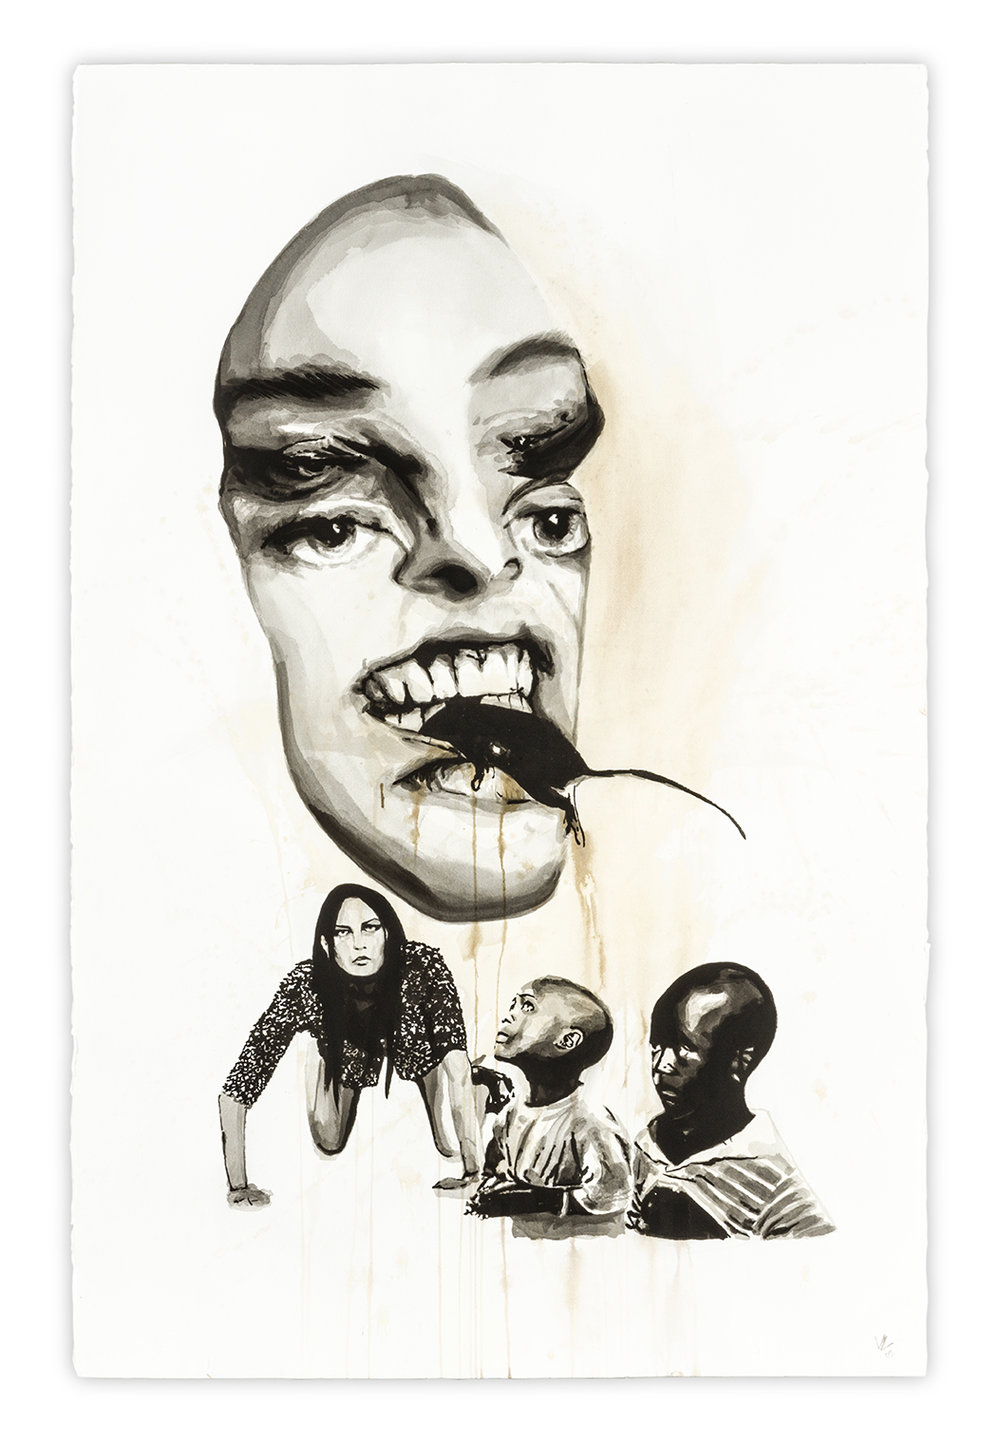 Merciless   Vanessa Lodigiani | Indian Ink and gouache on Arches paper | 102x66 cm | New York 2010